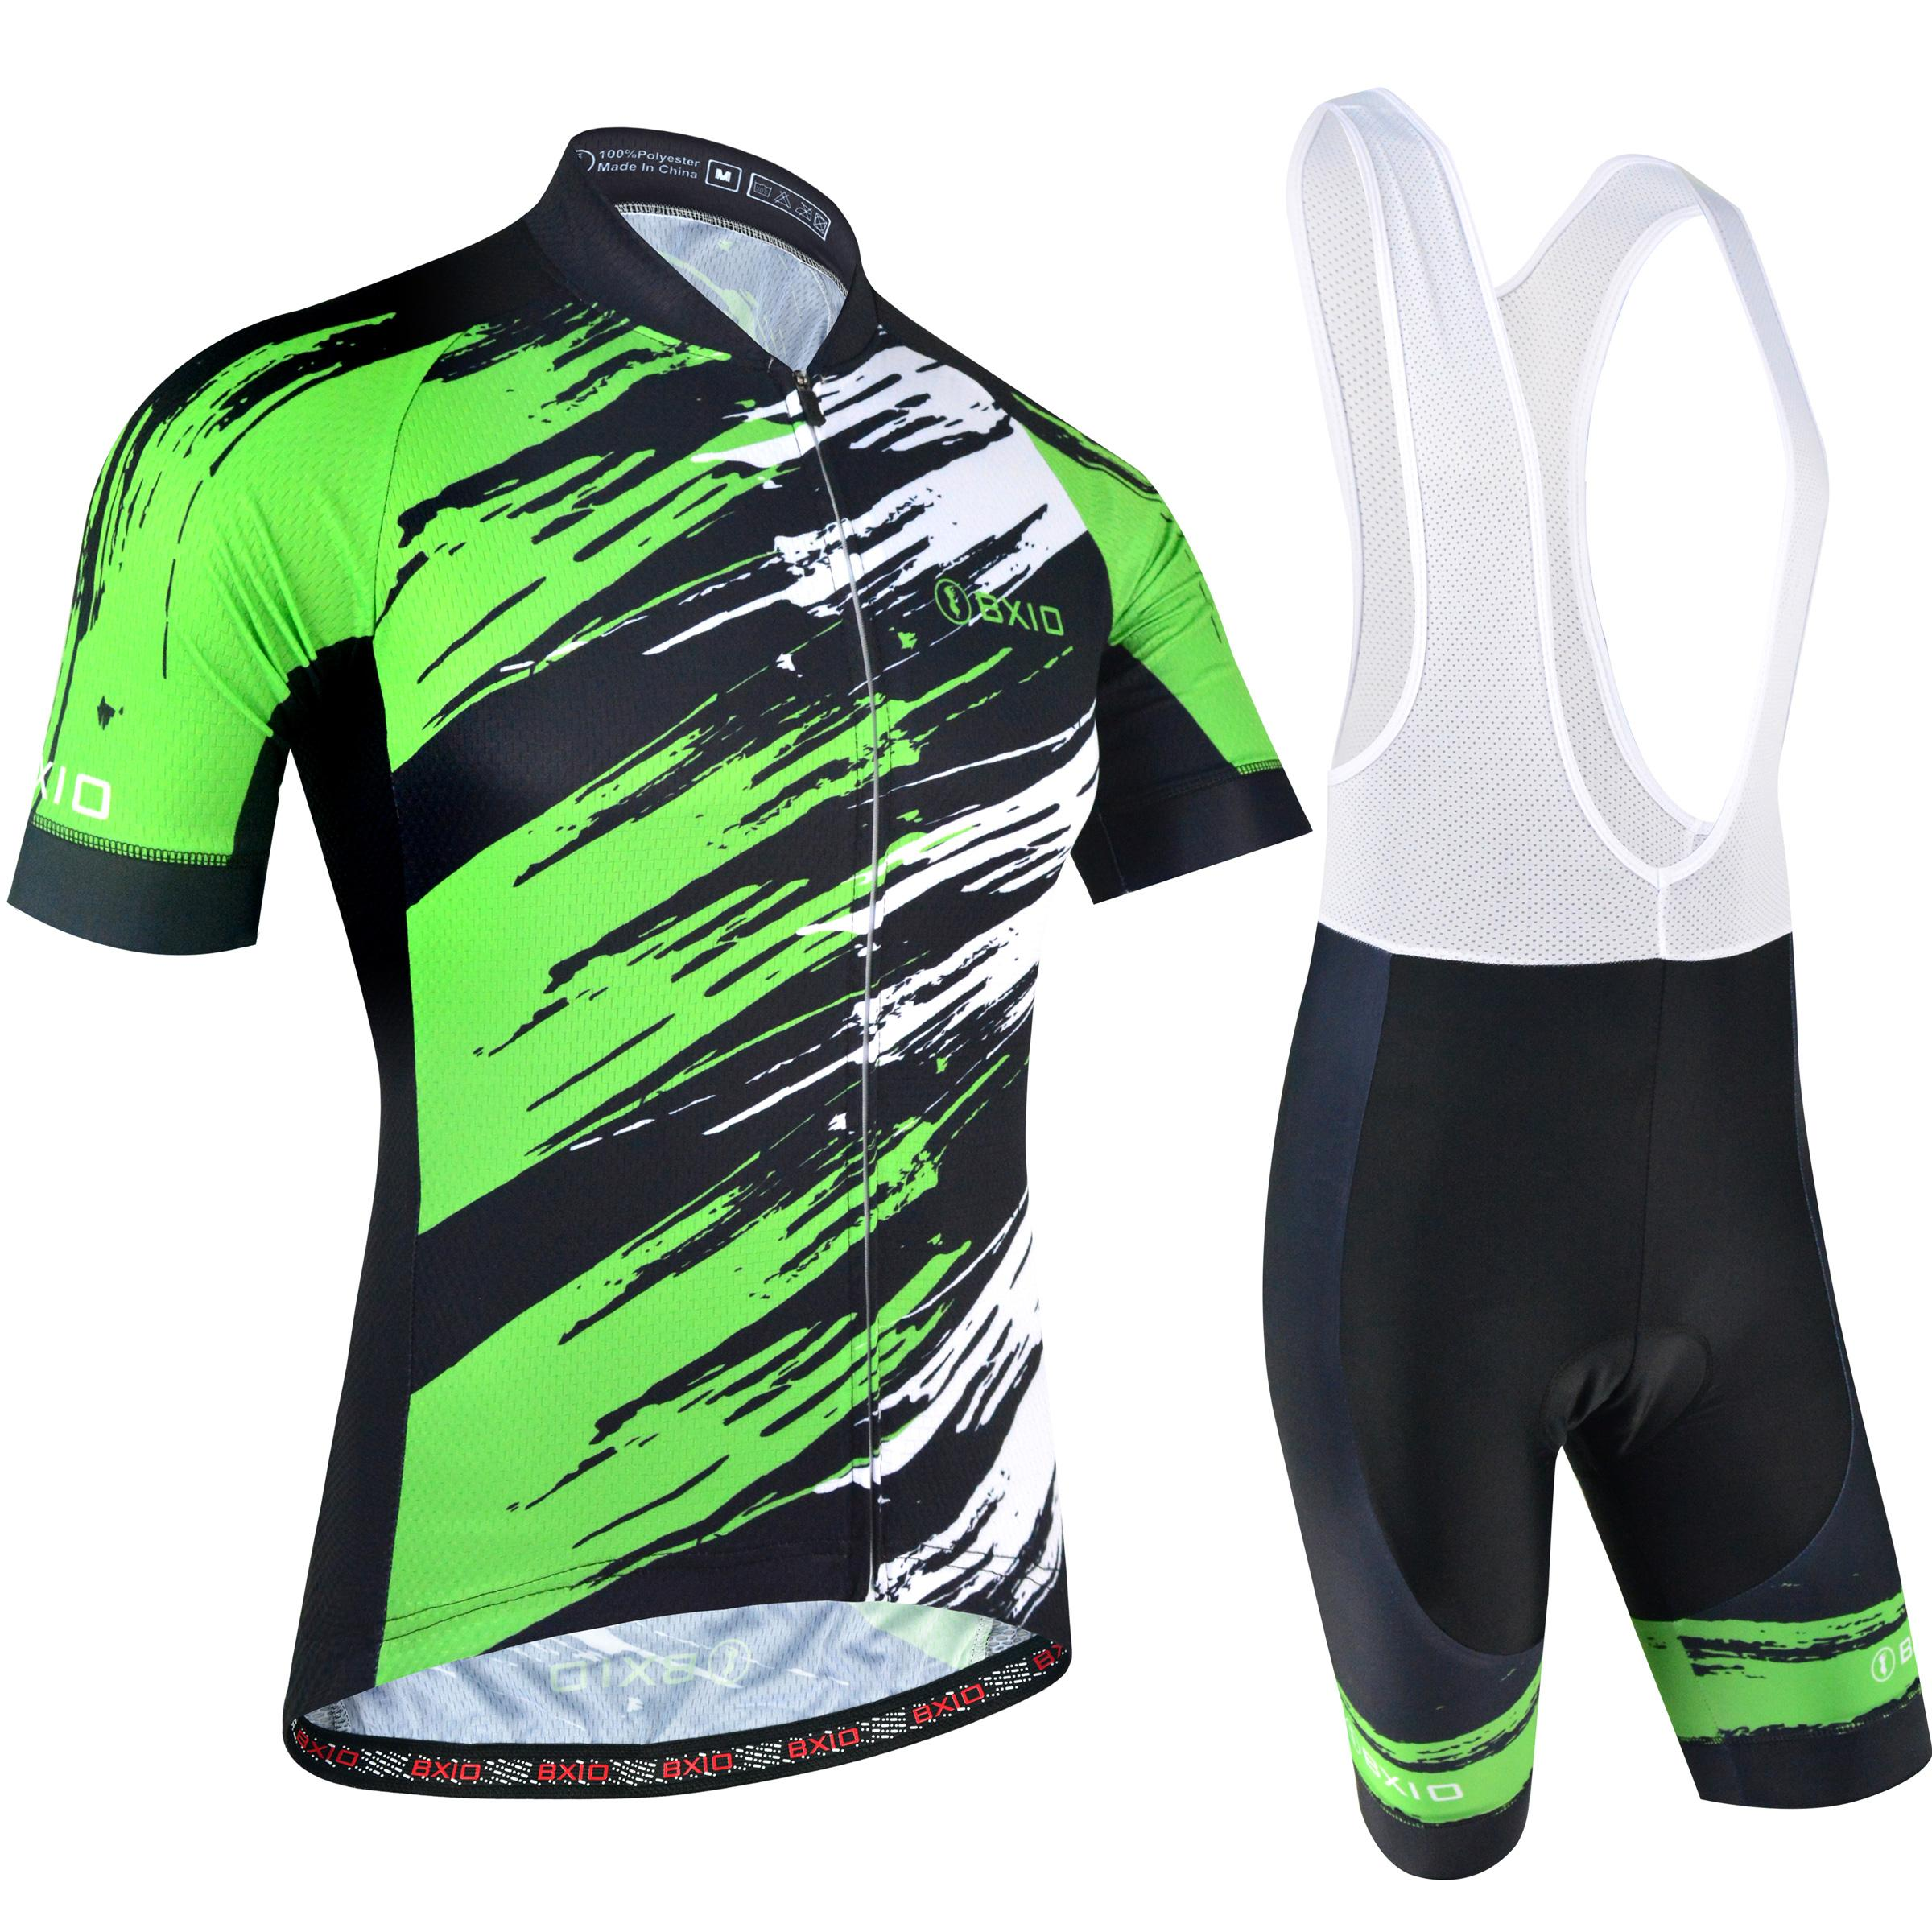 17c9efba1 2018 BXIO Brand Cool Cycling Jerseys Highly Recommended Graffiti Style Bike  Clothing Green And White Short Sleeve Ropa Ciclismo Men BX 170 Biking Gear  ...